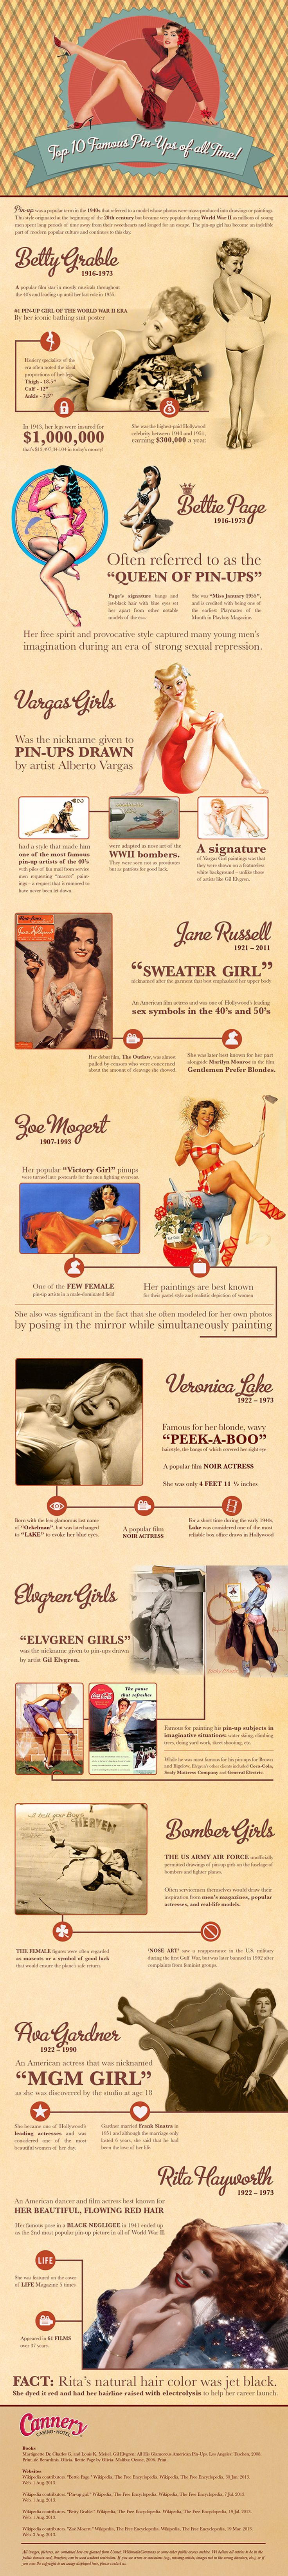 Top 10 Famous Pin-Ups of all Time! | Out-of-Focus Photography